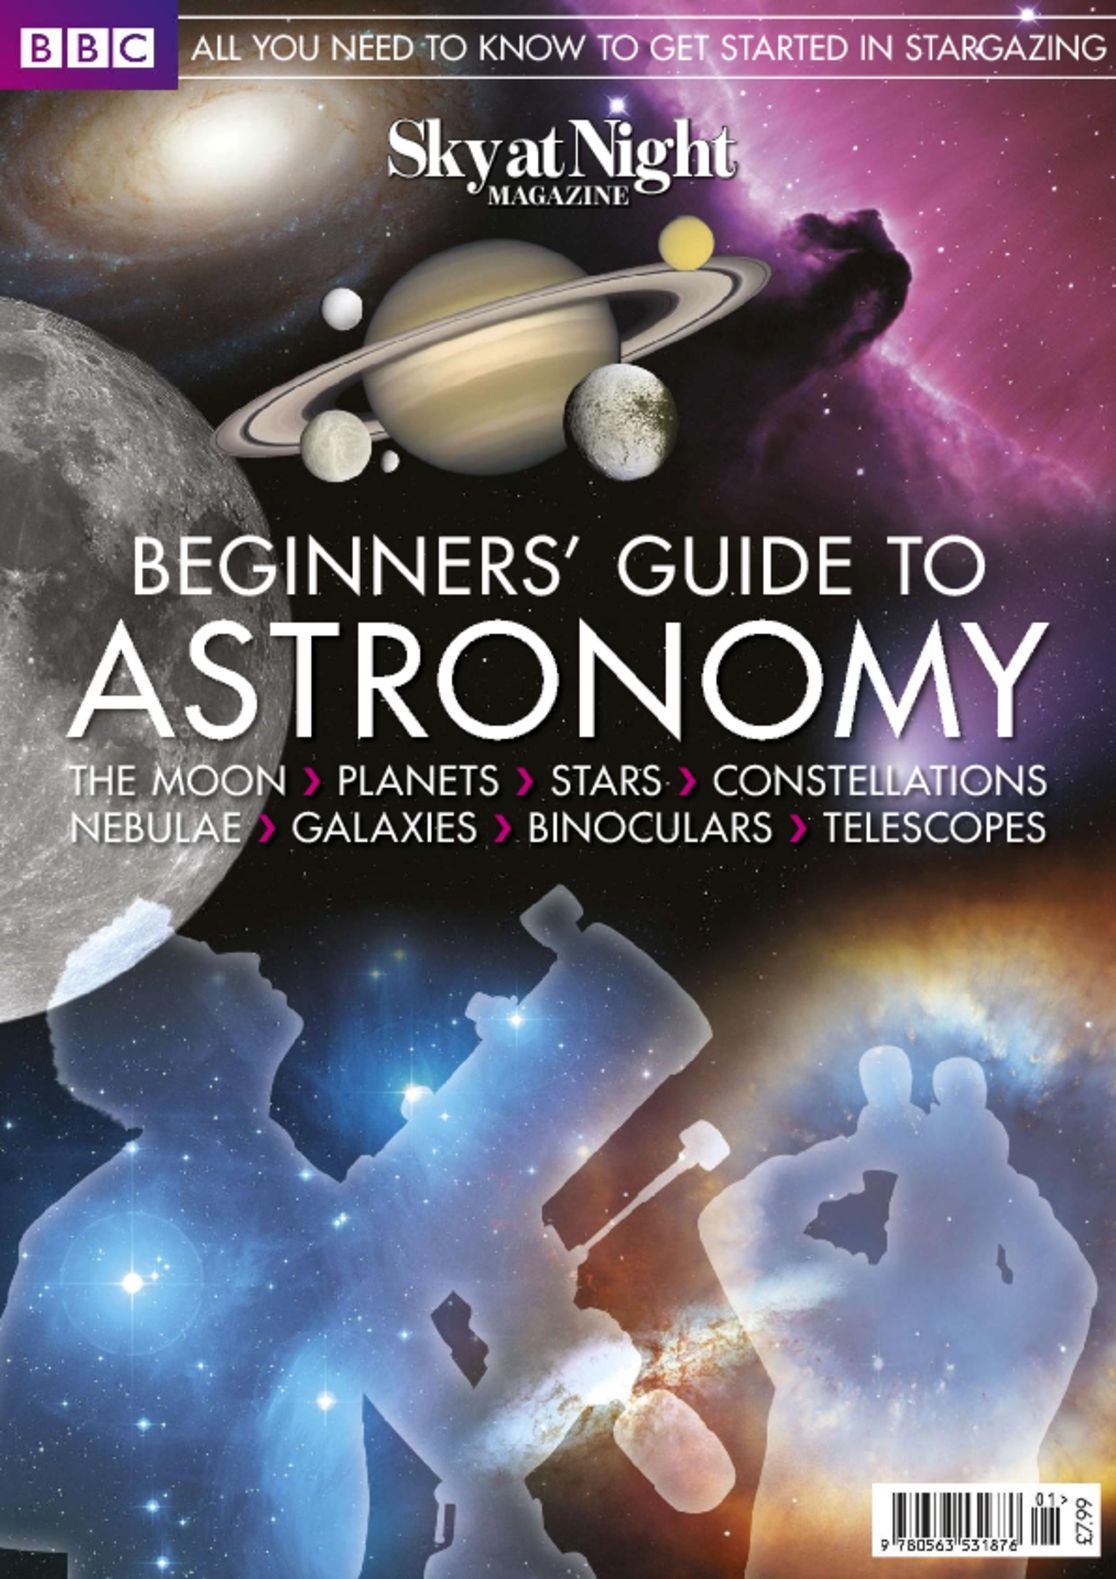 astronomy guide for beginners - photo #18